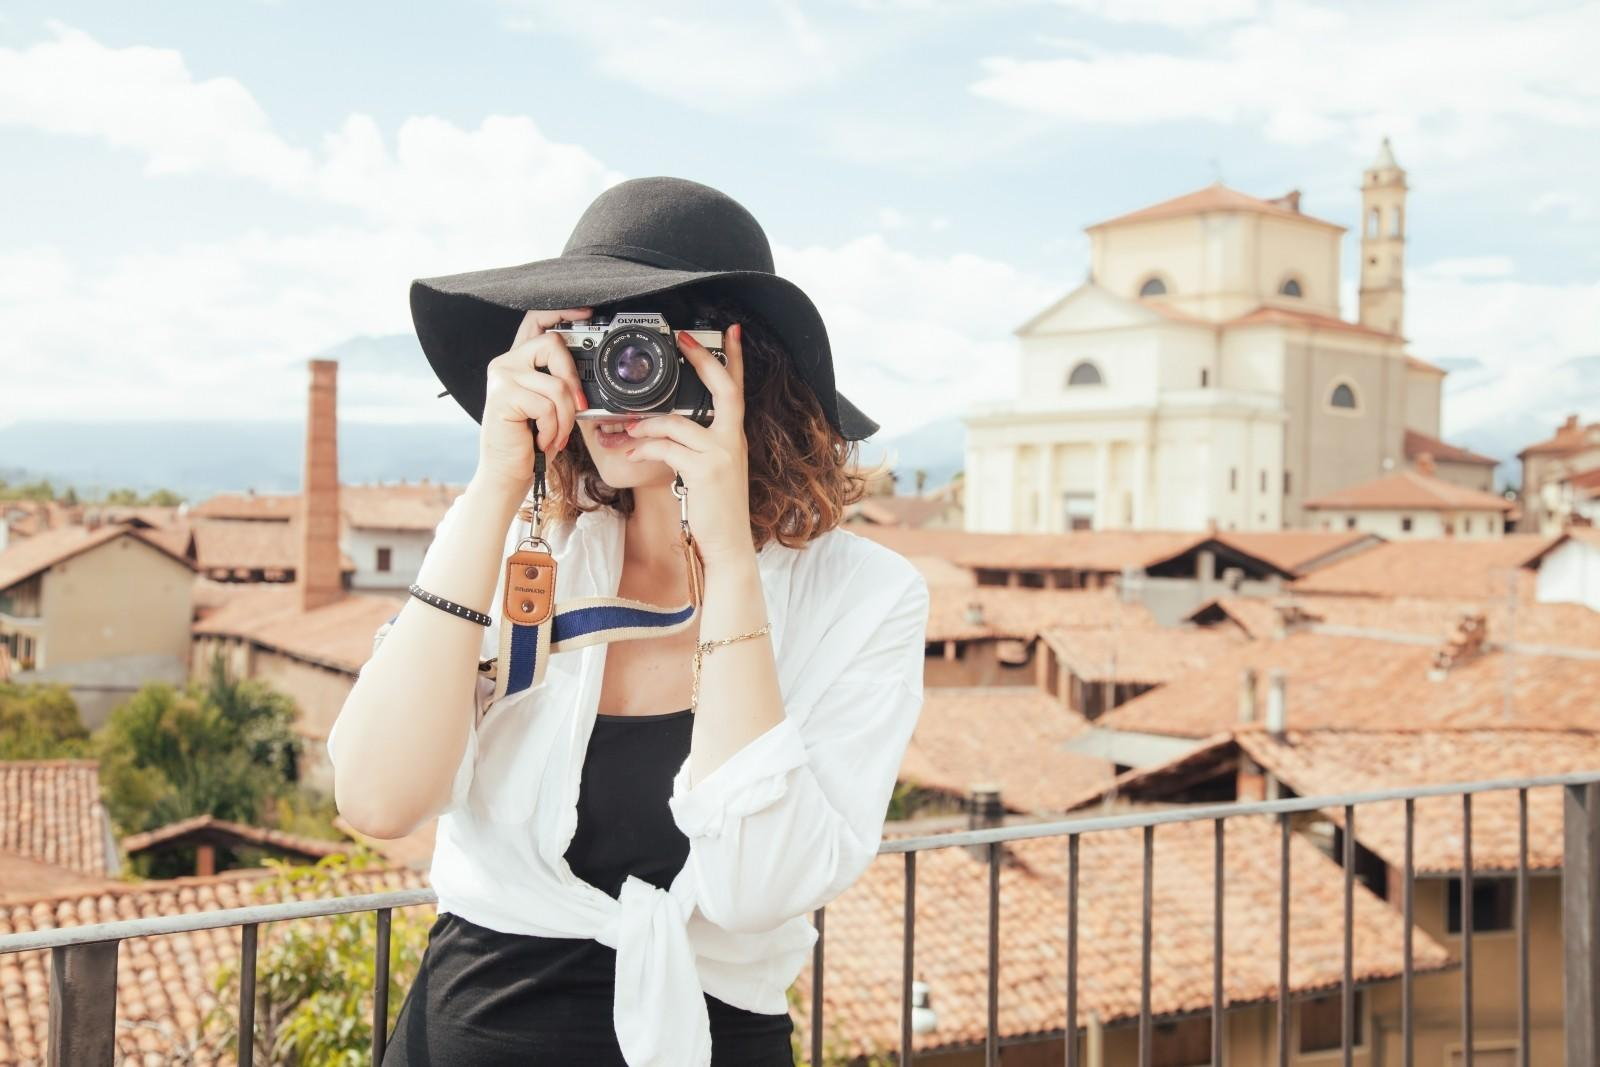 Expedia acquires travel photography platform Trover as shopping spree continues